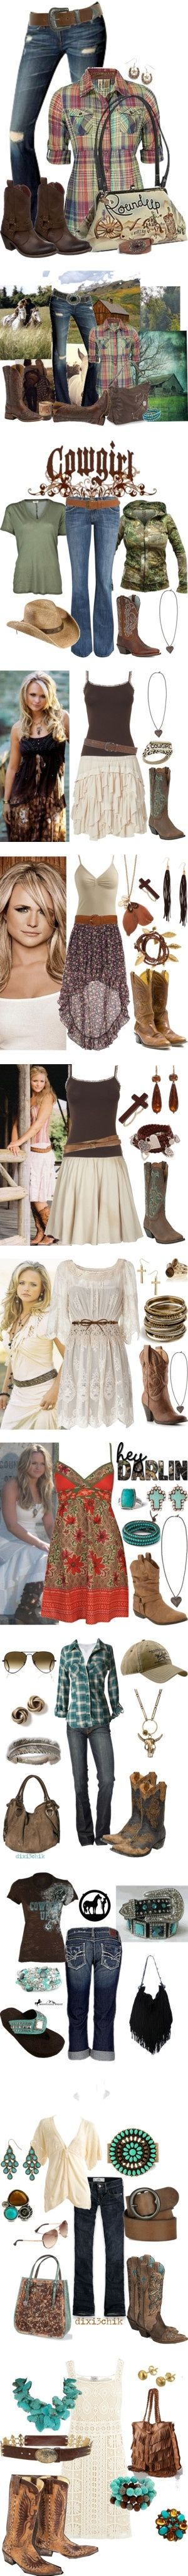 She does wear cute clothes! Country girl stuff by Felicia Berry- I wouldn't wear some of these but most of these are cute!